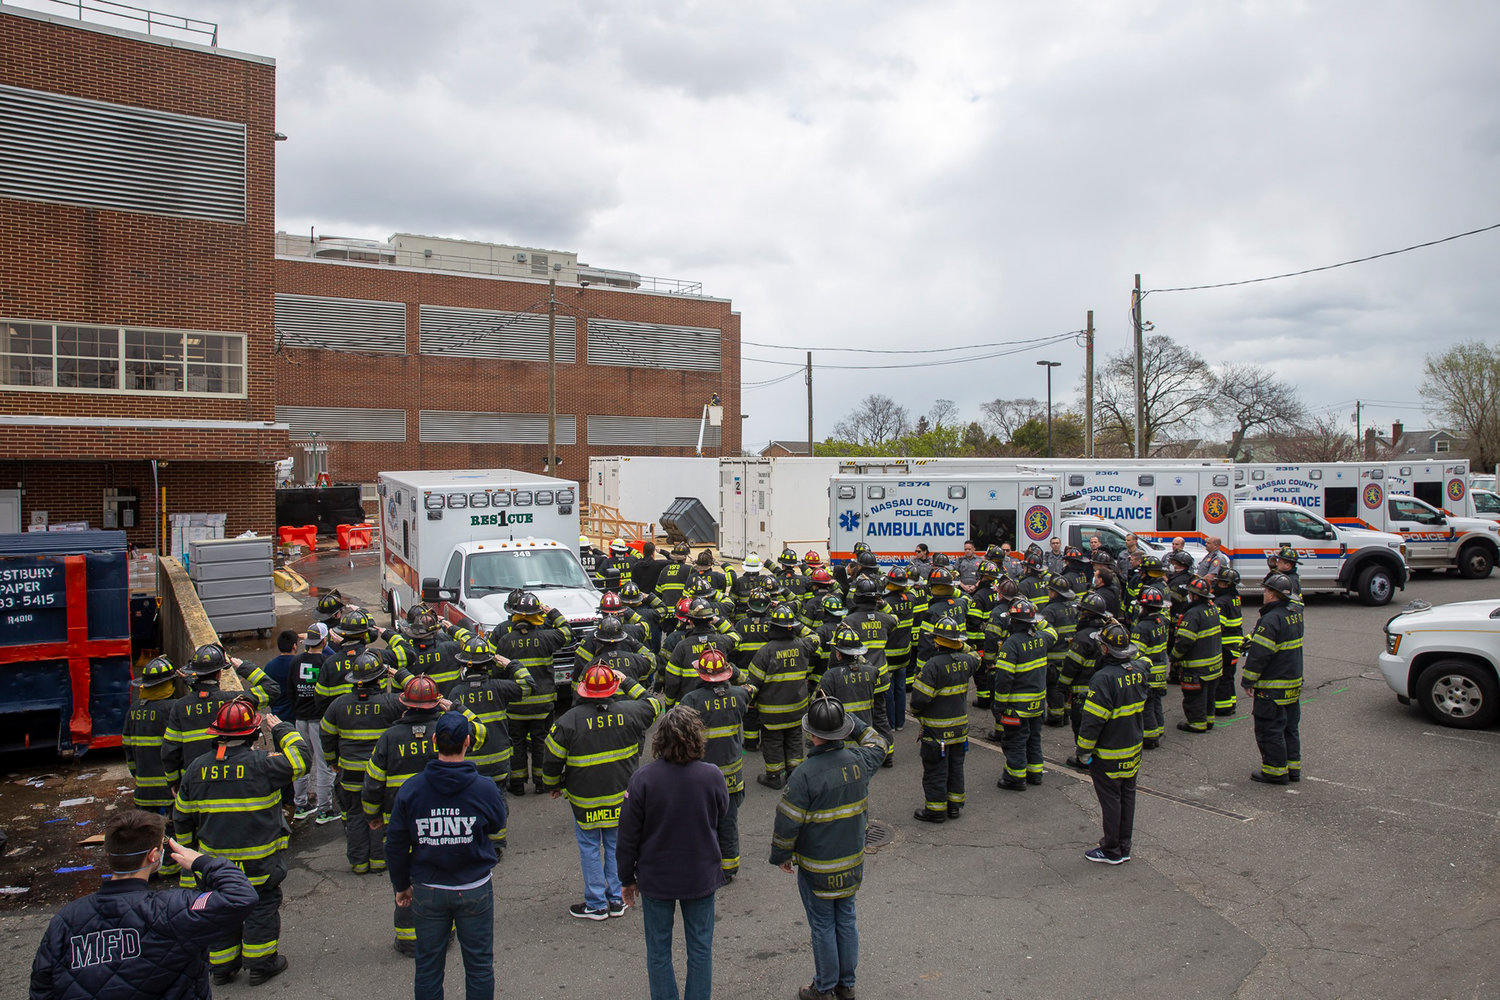 Members of the Valley Stream Fire Department assembled outside South Sinai South Nassau to salute Field shortly after his death. He died in the line of duty after transporting a Covid-19 patient.